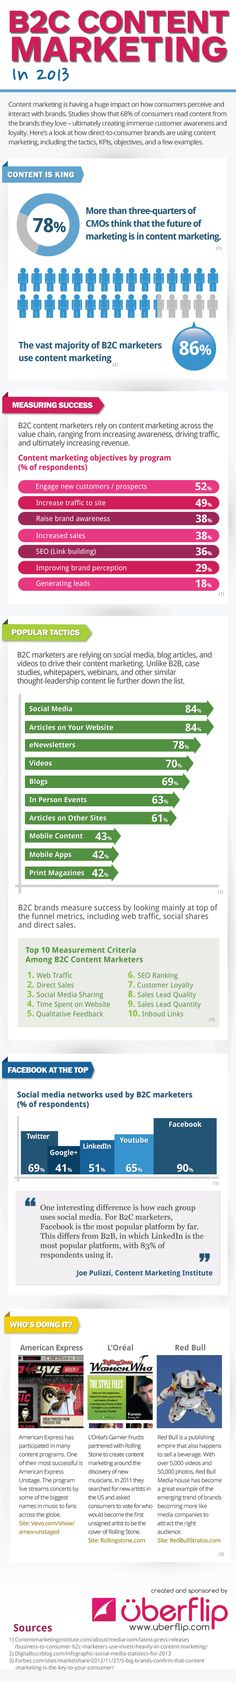 B2C Content Marketing In 2013 - Infographic